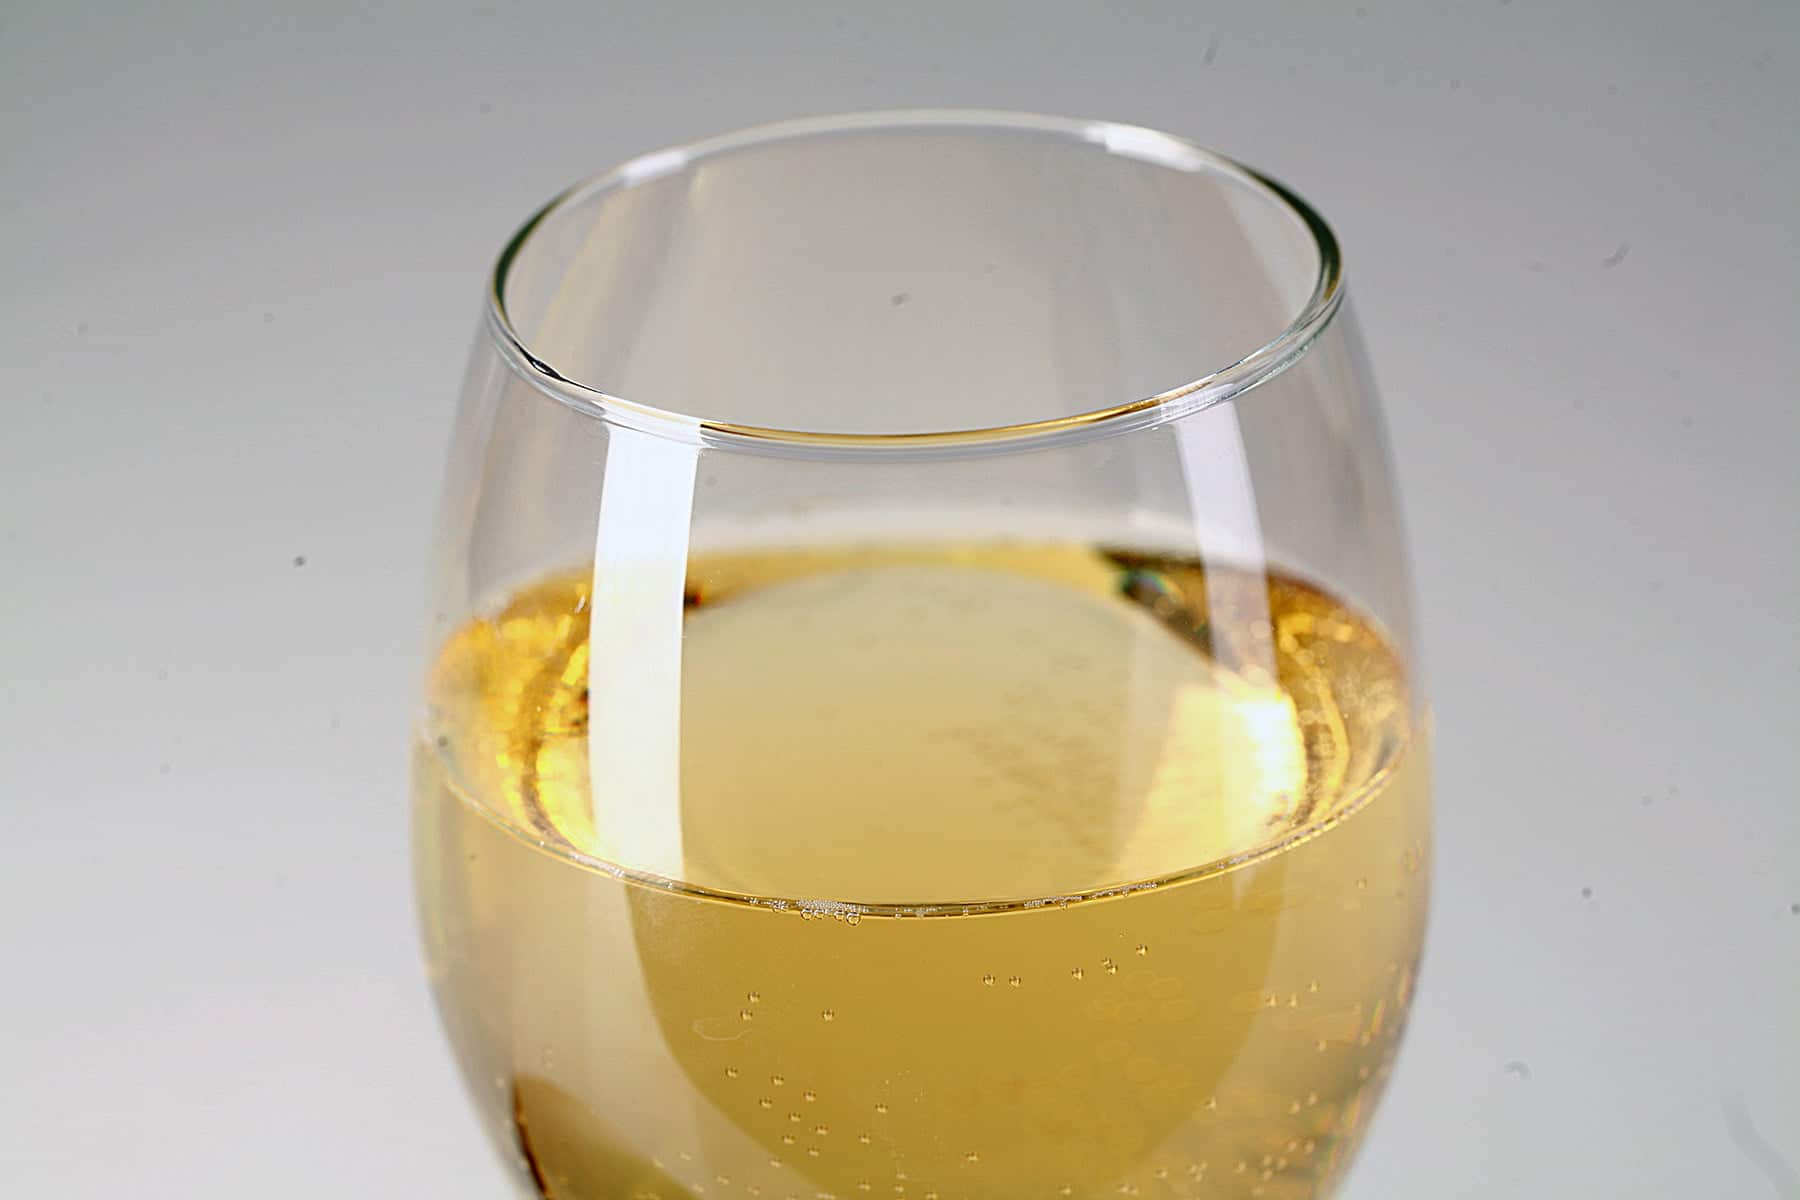 A glass of straw coloured wine is pictured next to a whole mango.